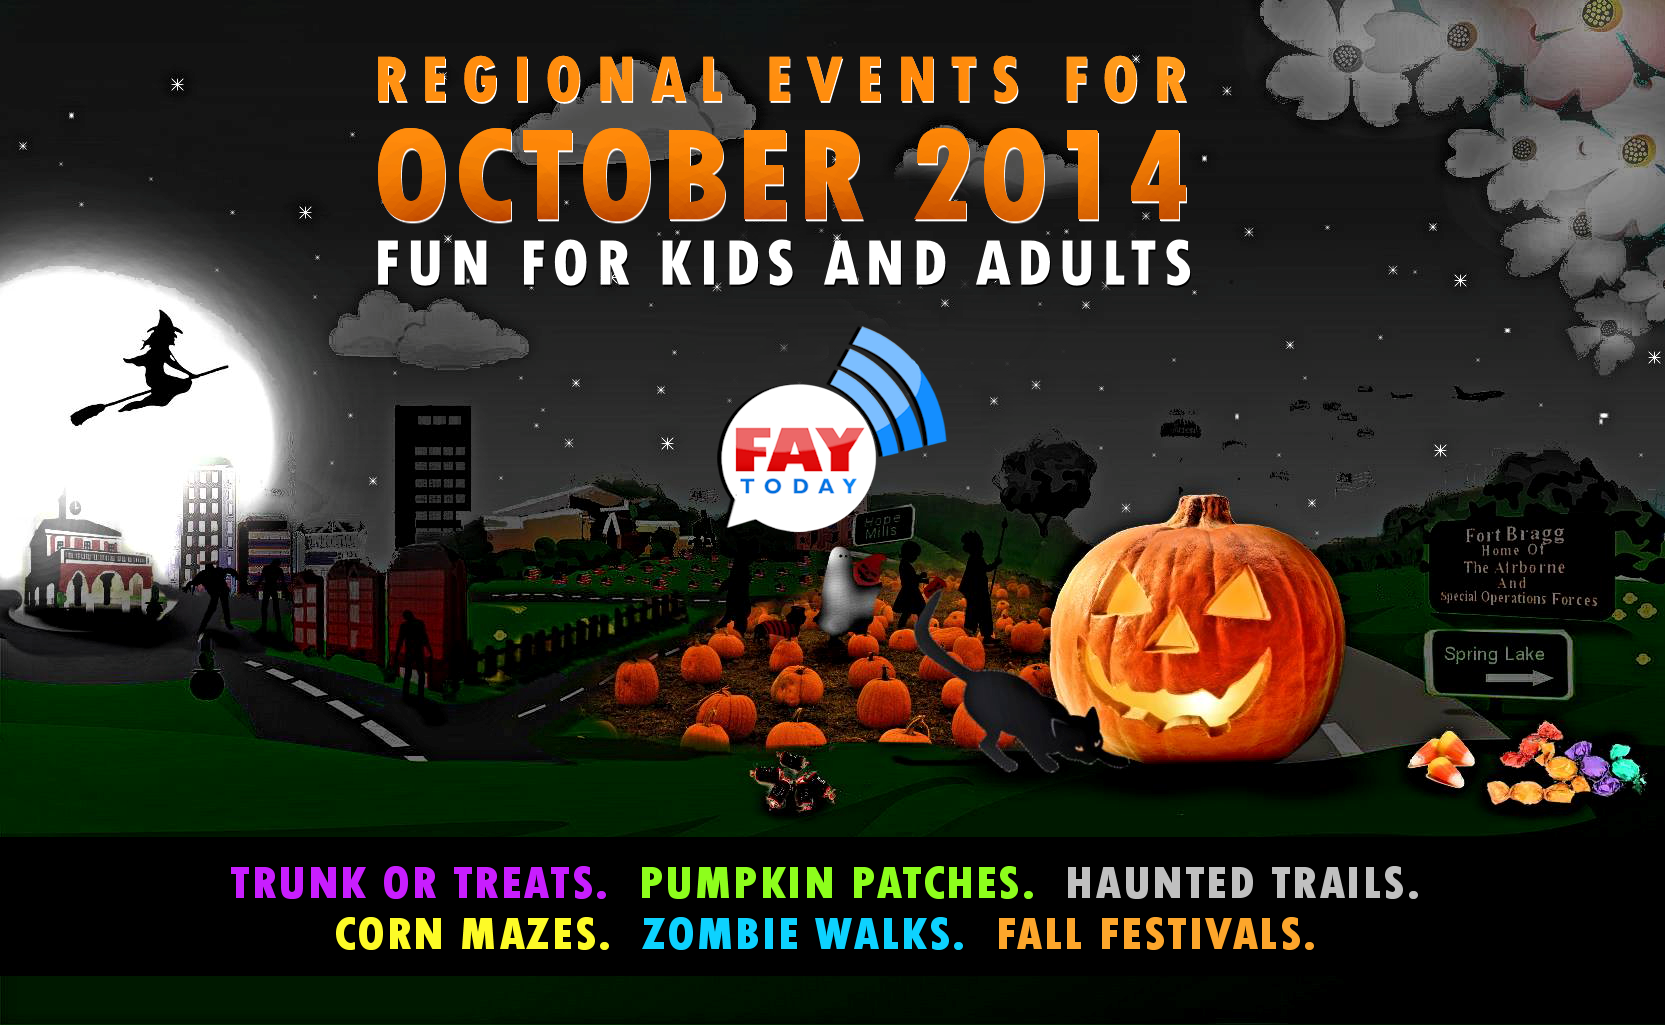 List of 2014 Halloween Events for Kids and Adults Near